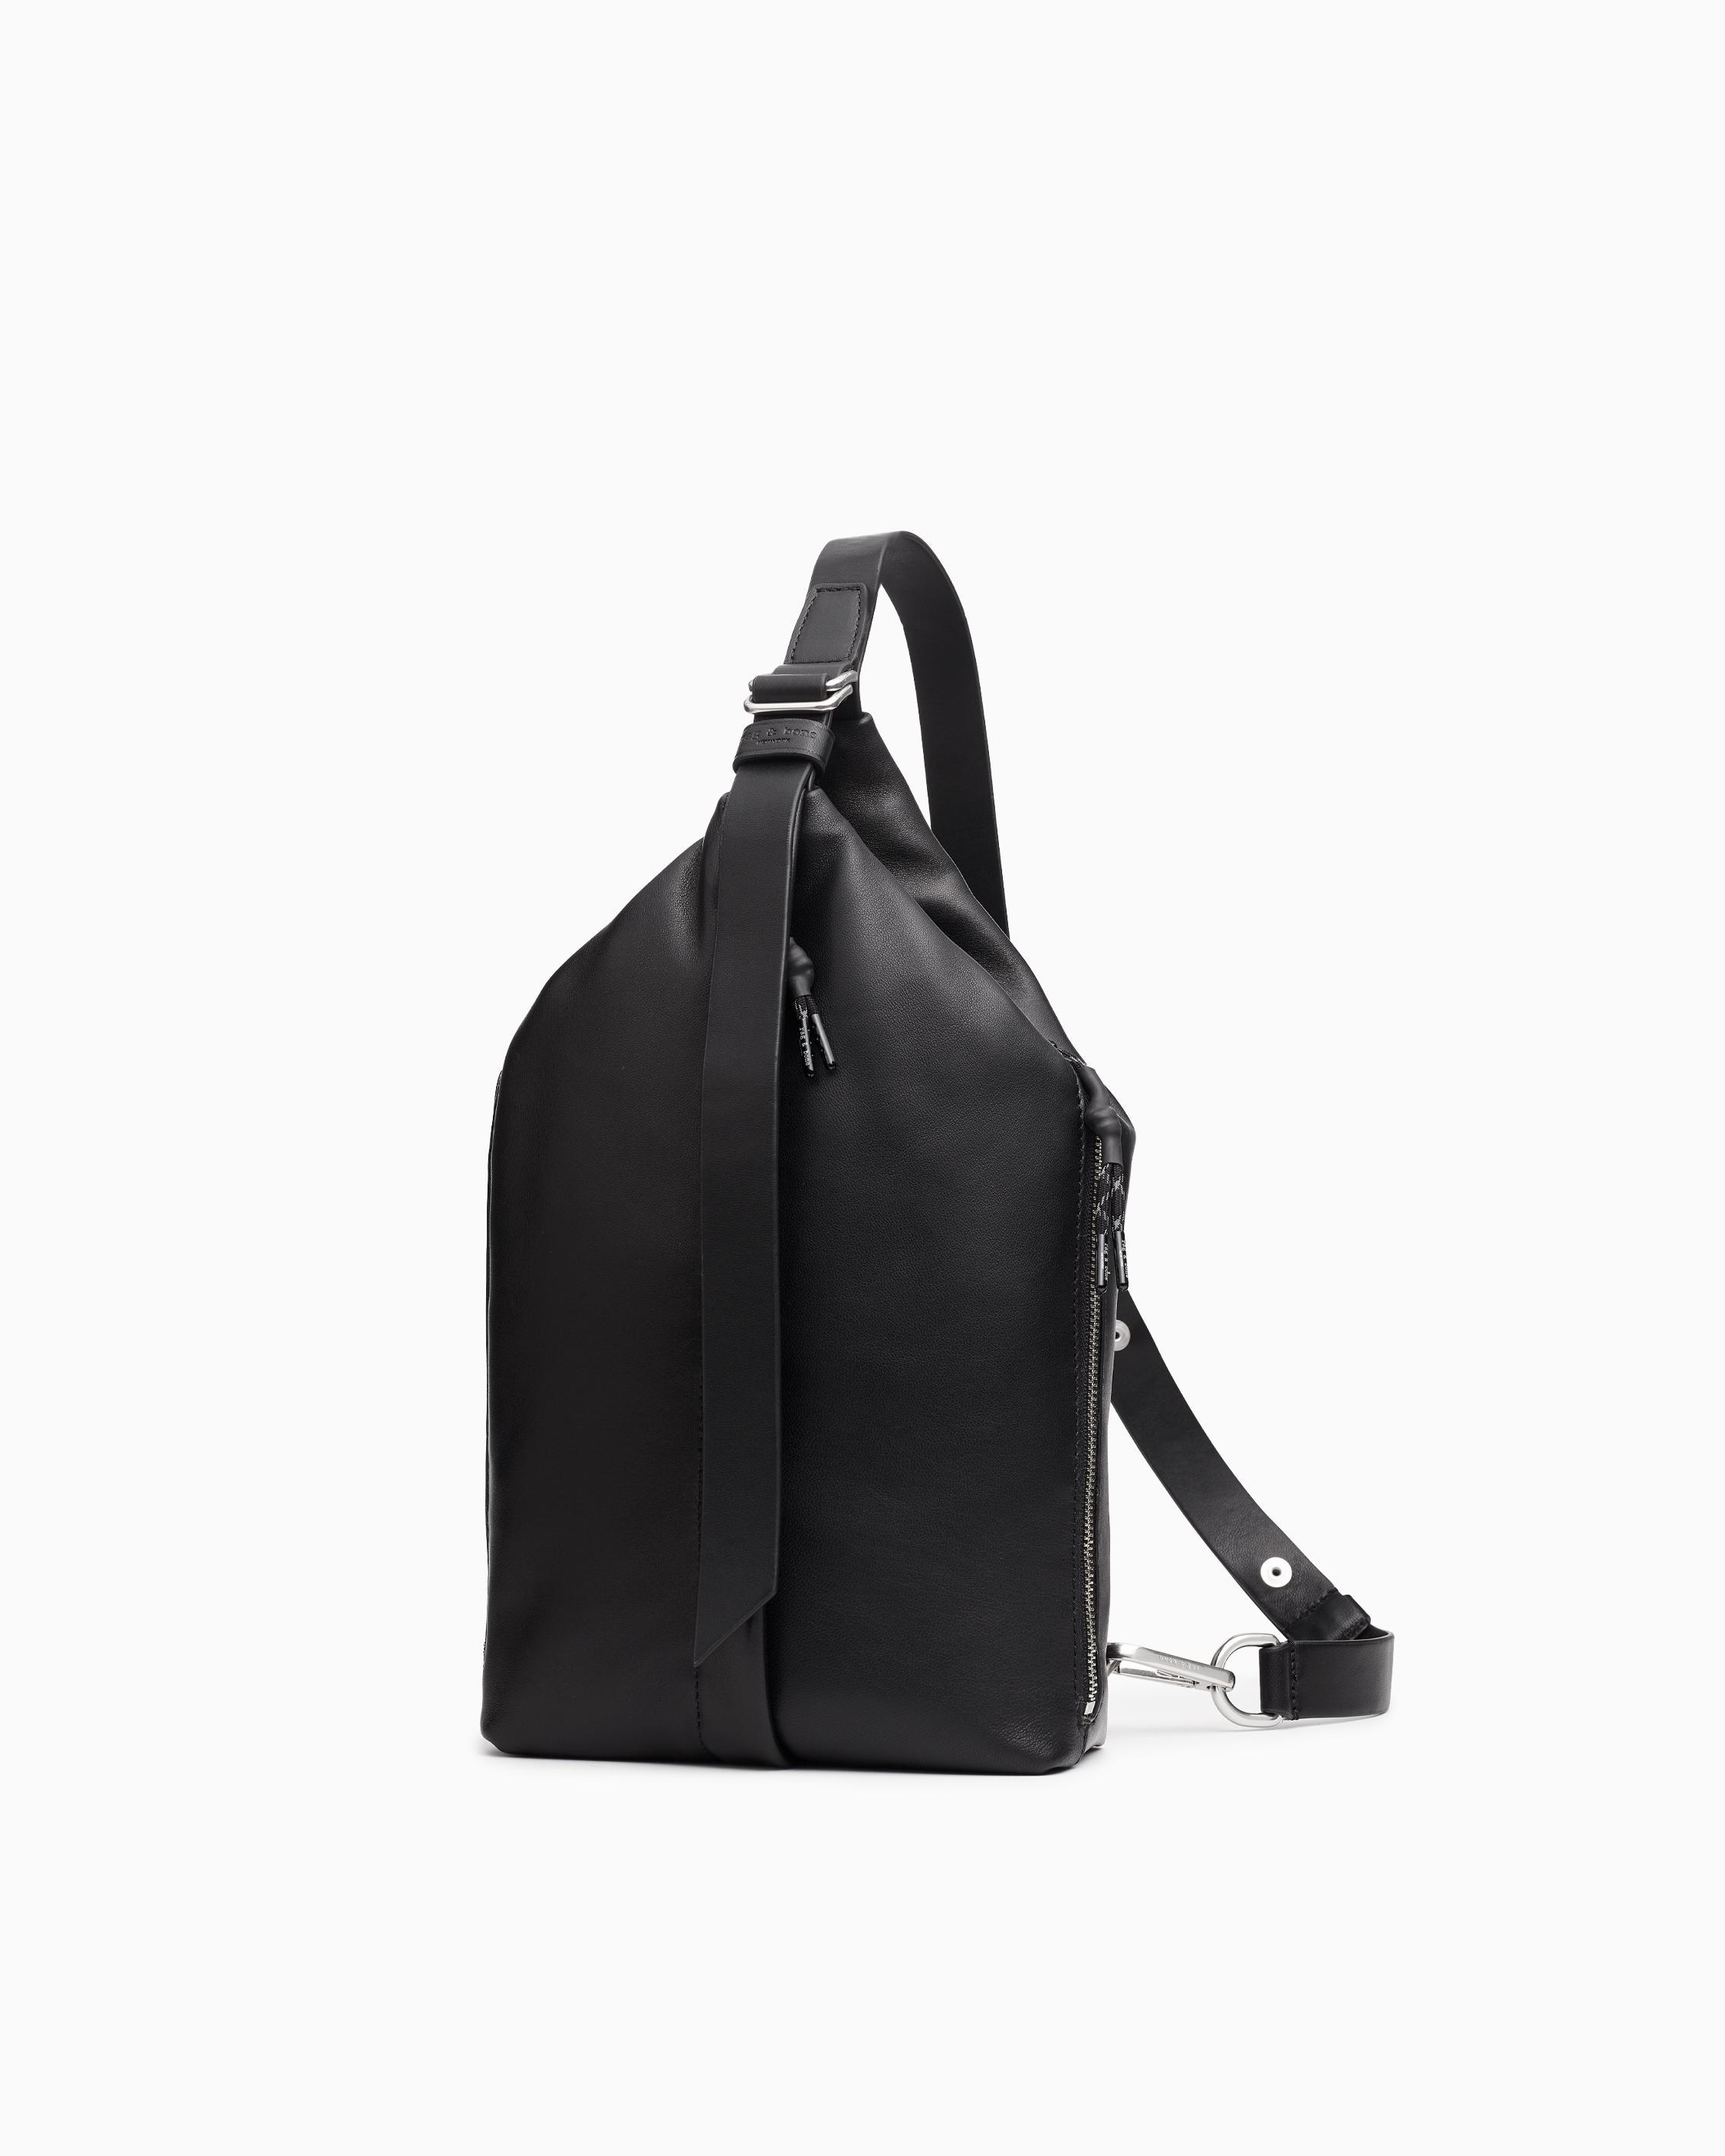 Hayden sling - leather and recycled materials